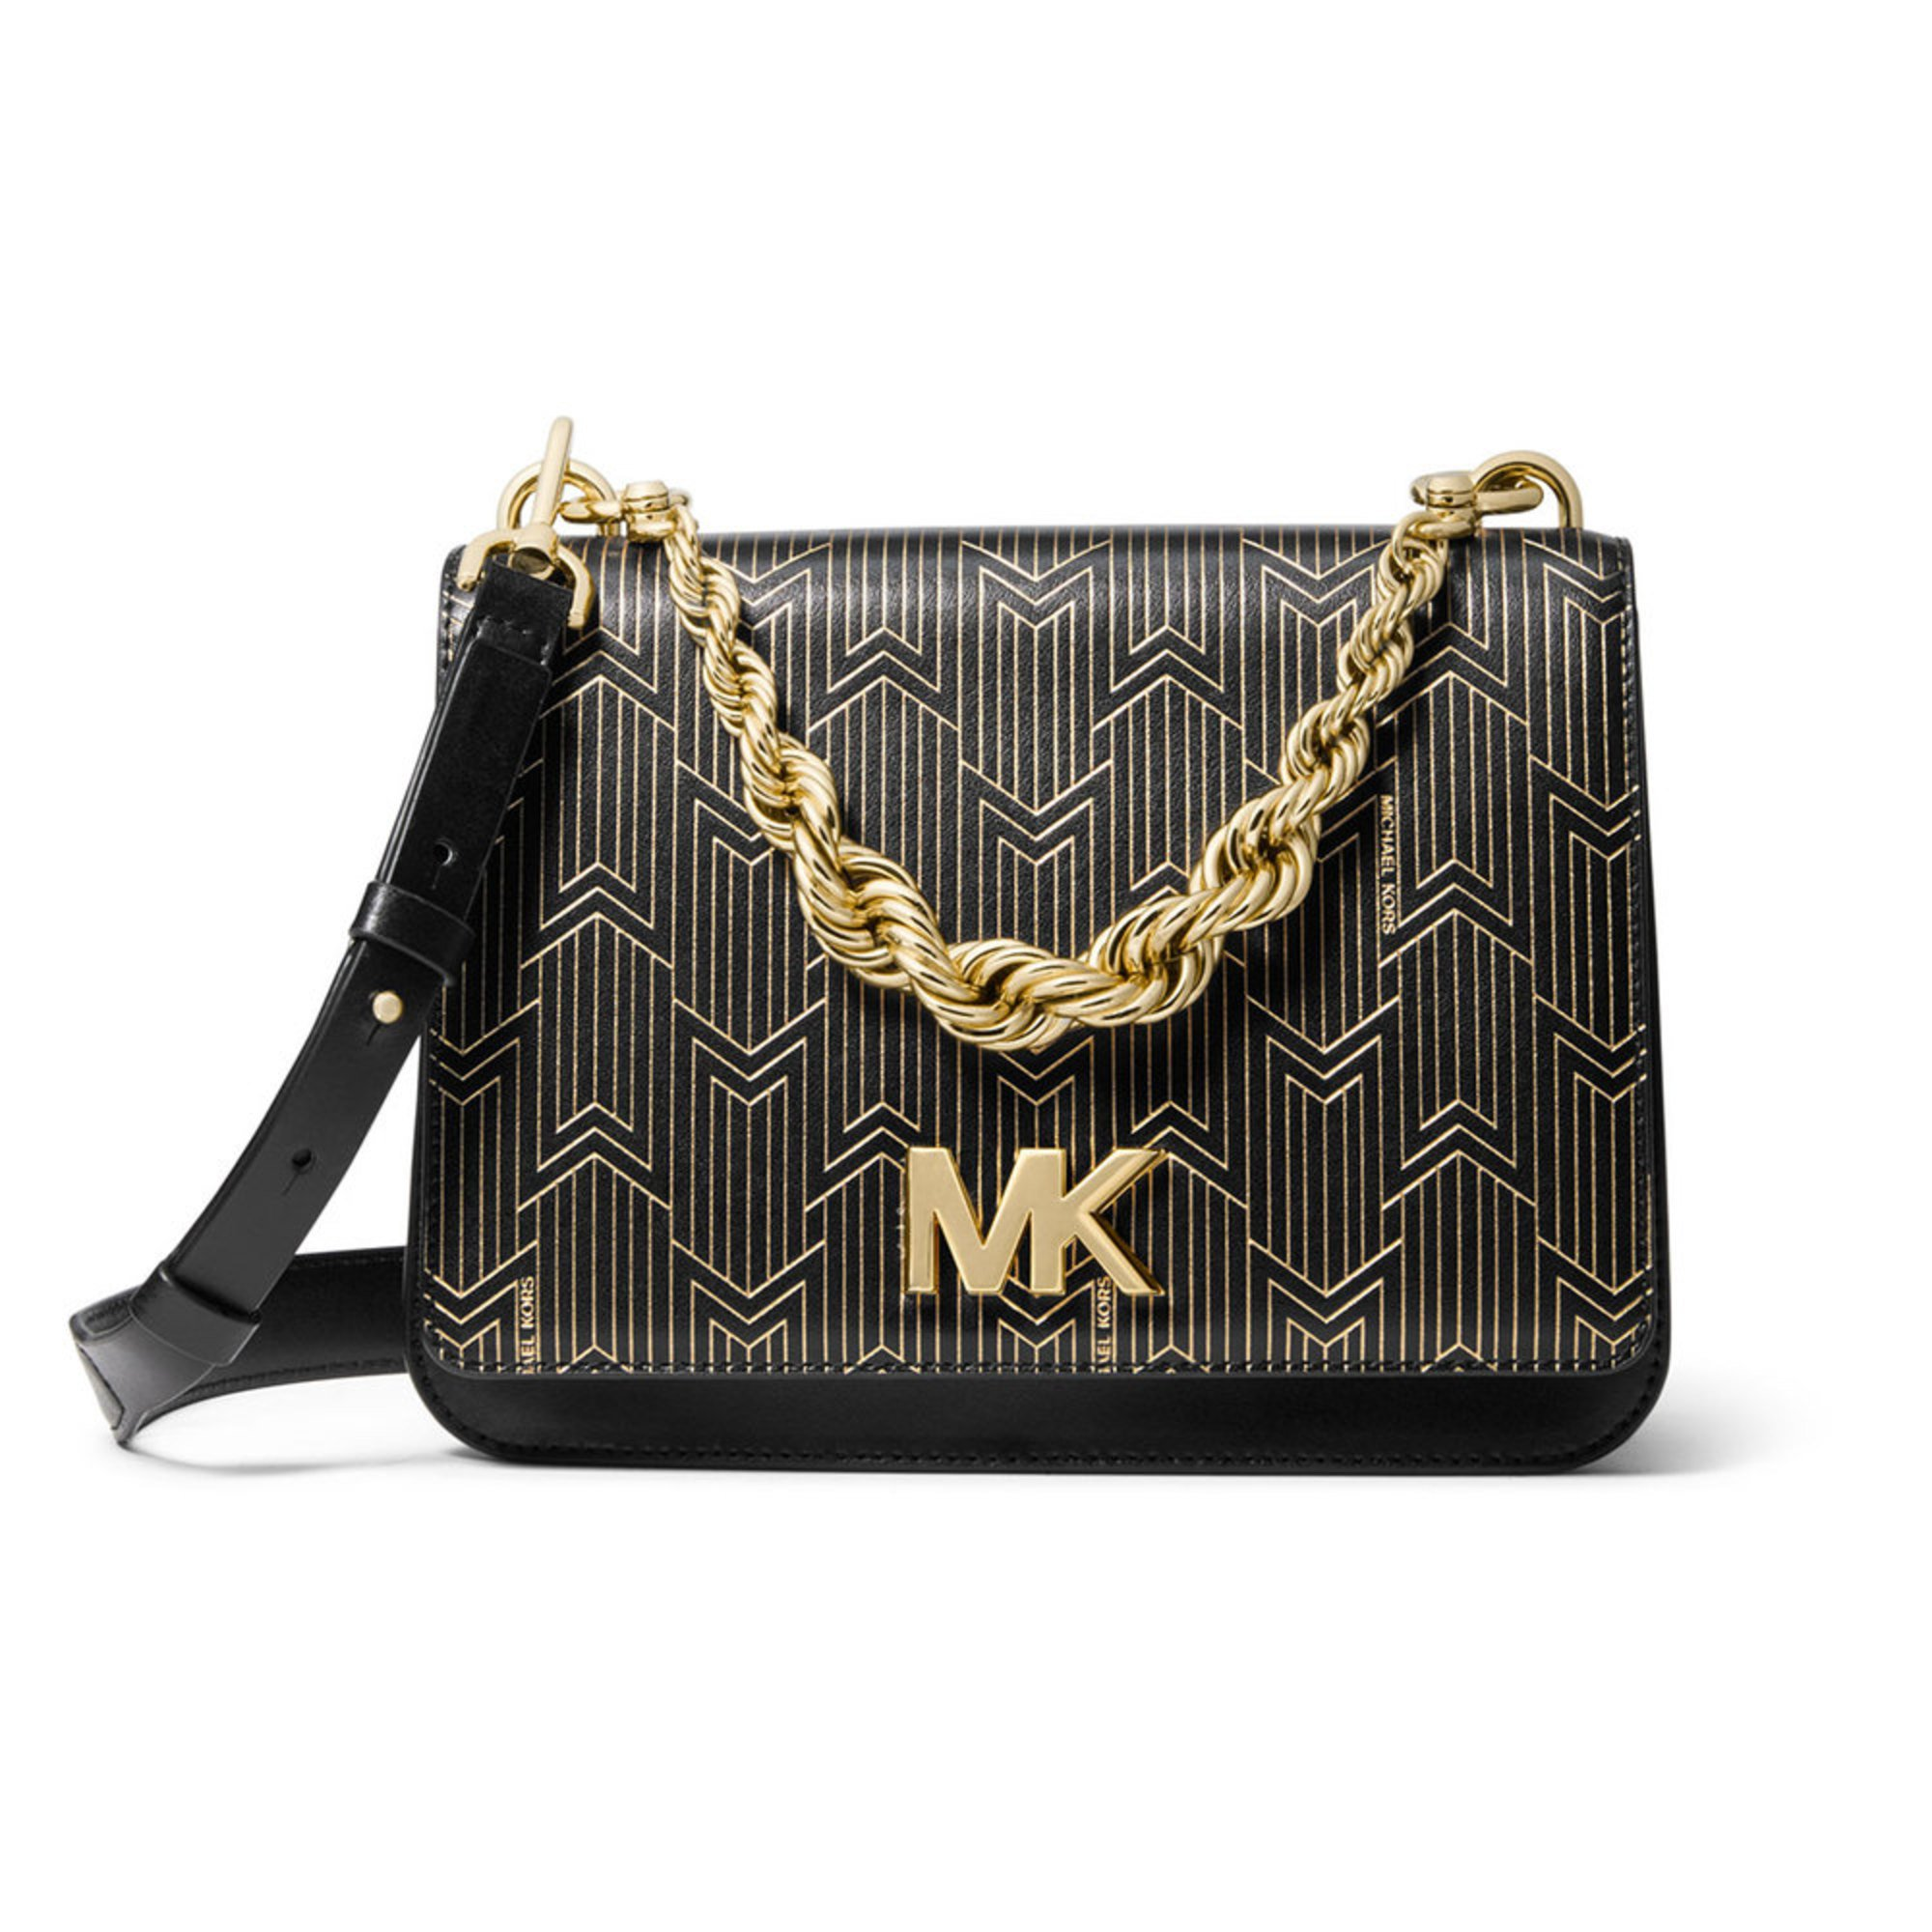 ccd8265df98b2 Michael Kors Mott Large Chain Swing Shoulder